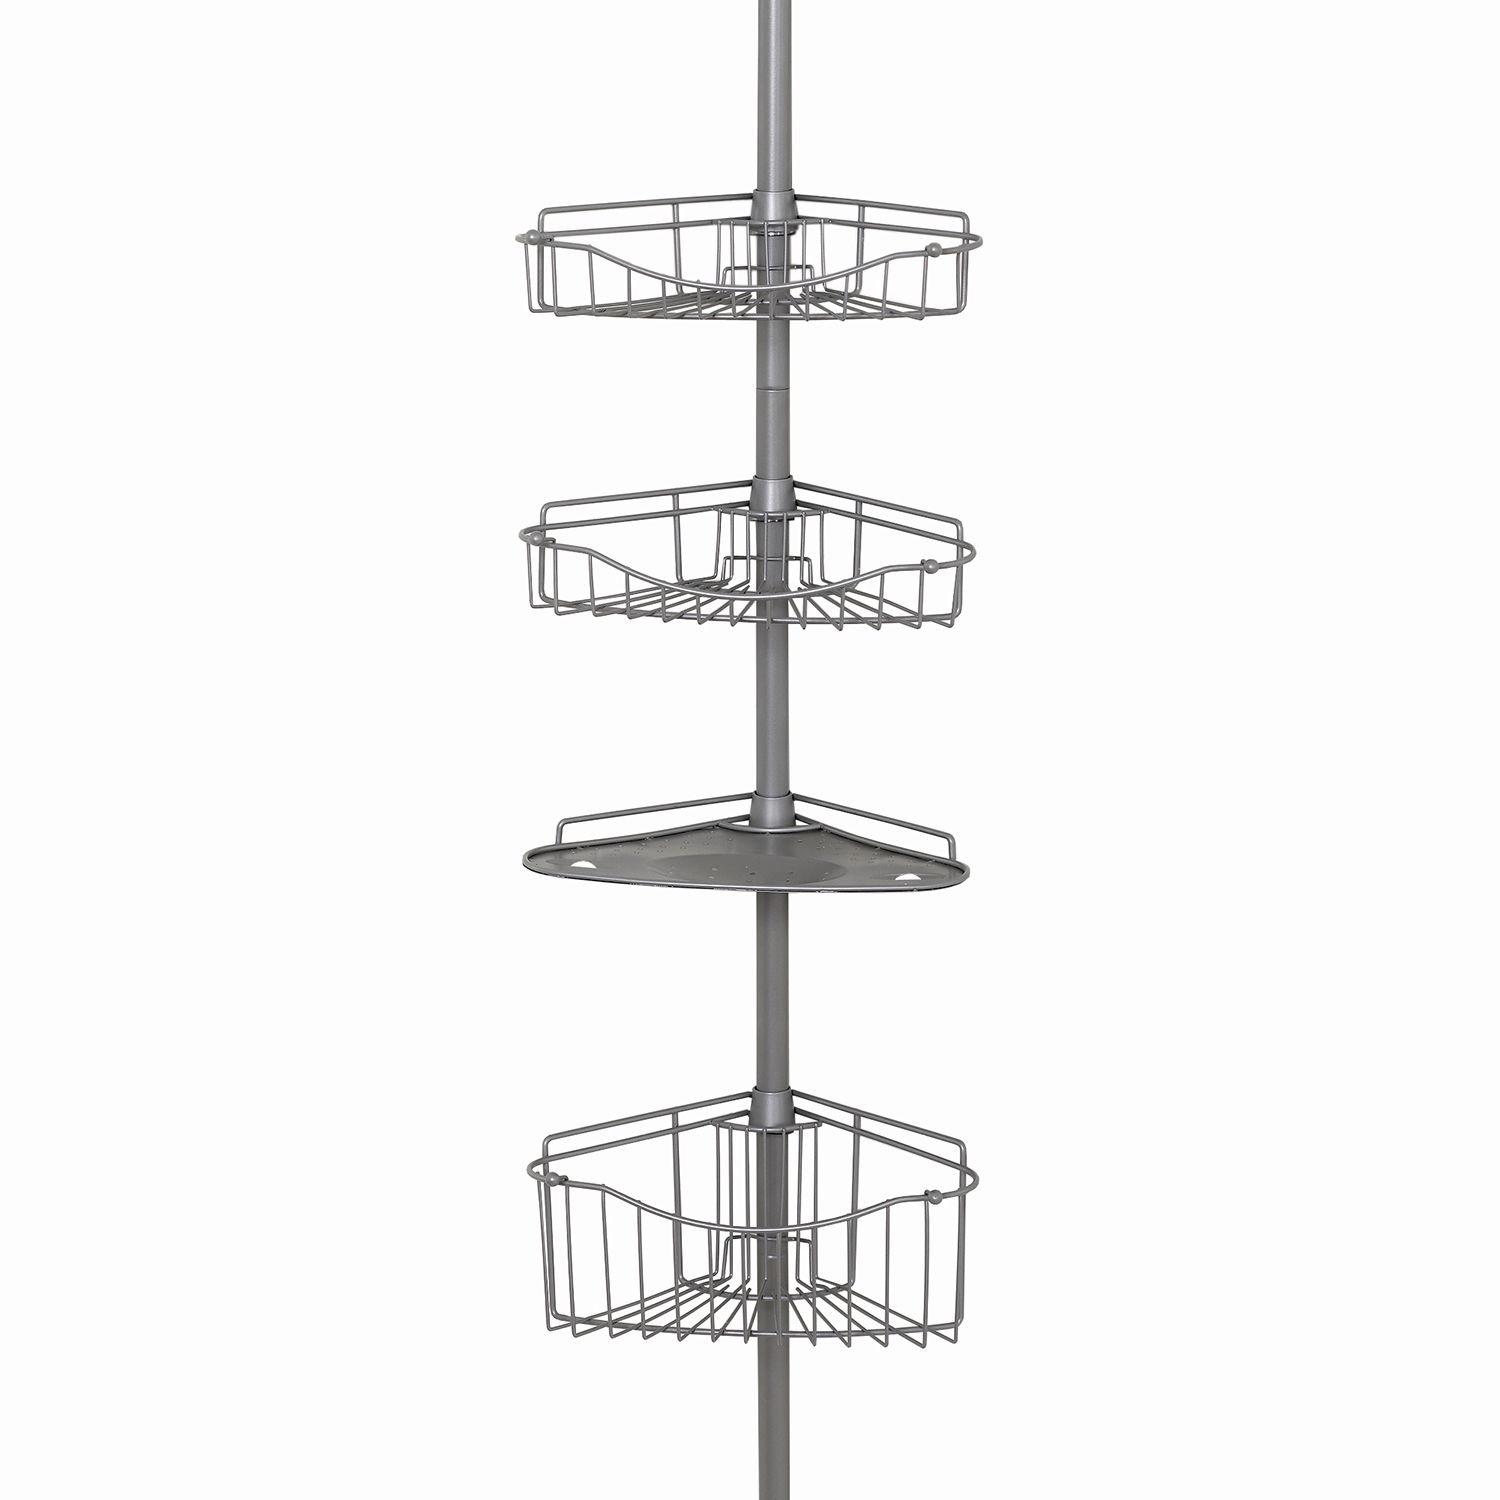 Zenna Home 4 Tier Tension Pole Shower Organizer